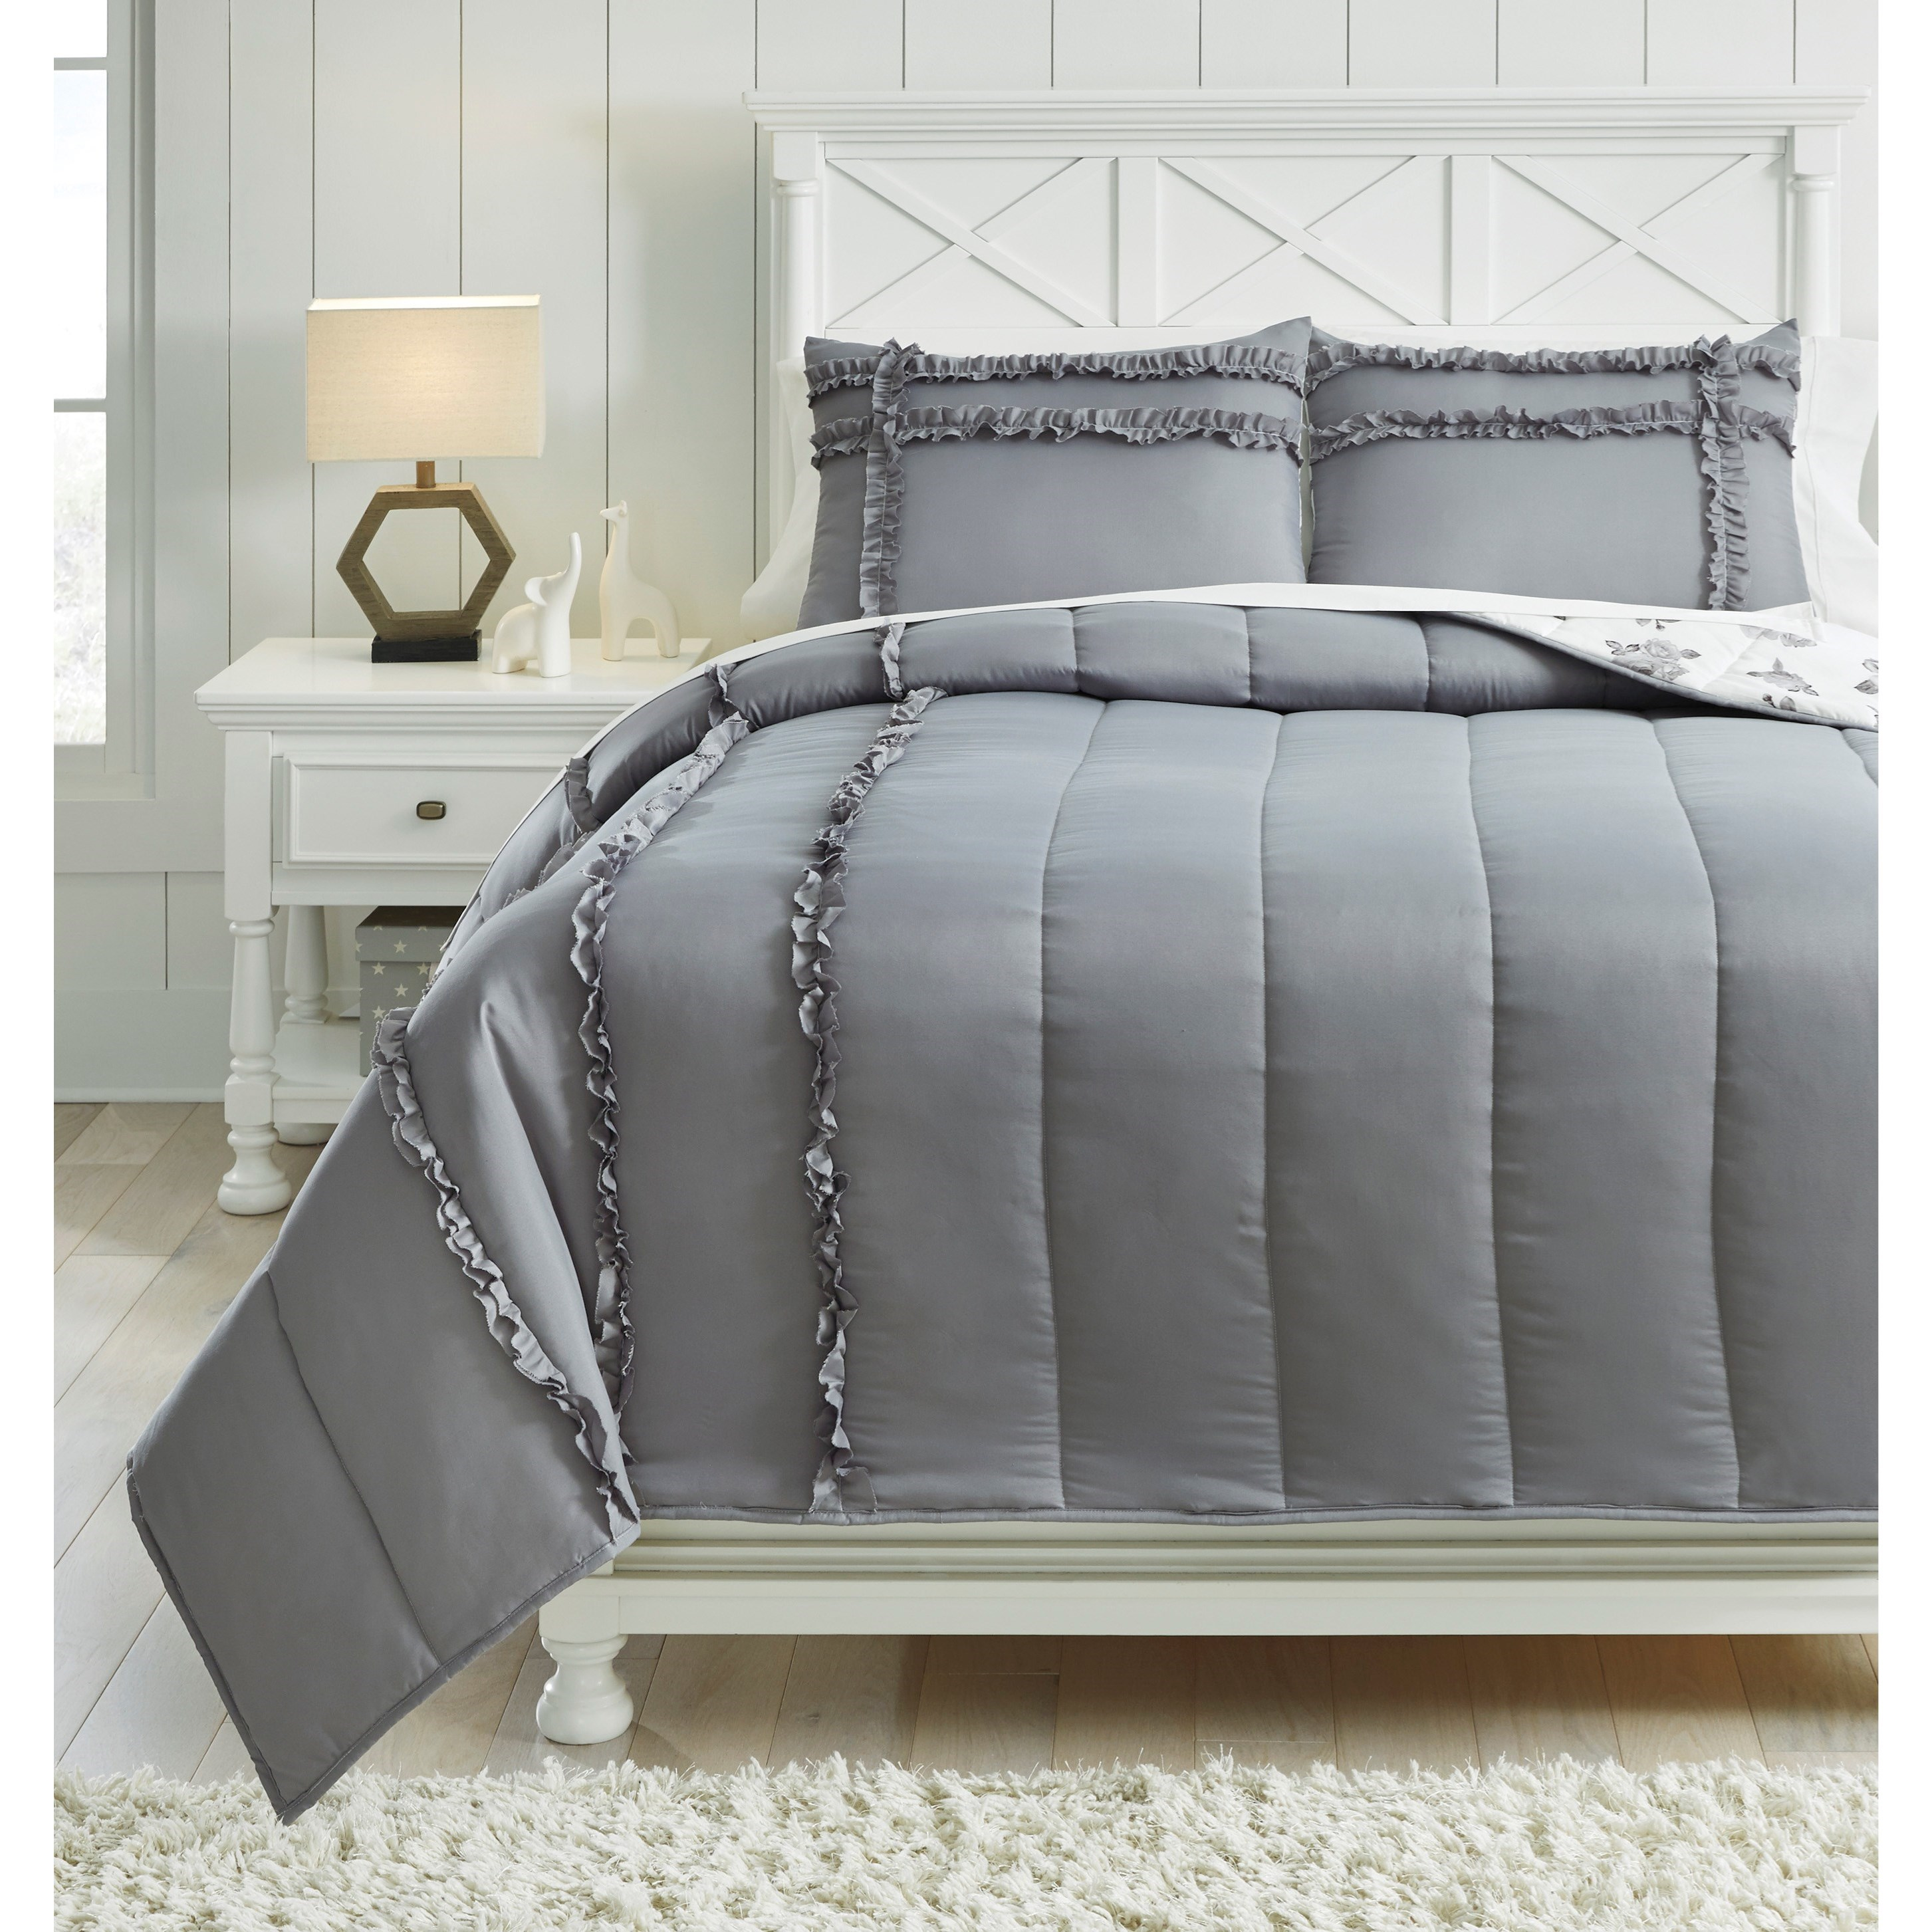 Signature Design By Ashley Bedding Sets Q426003f Full Meghdad Gray White Reversible Comforter Set Furniture And Appliancemart Bedding Sets